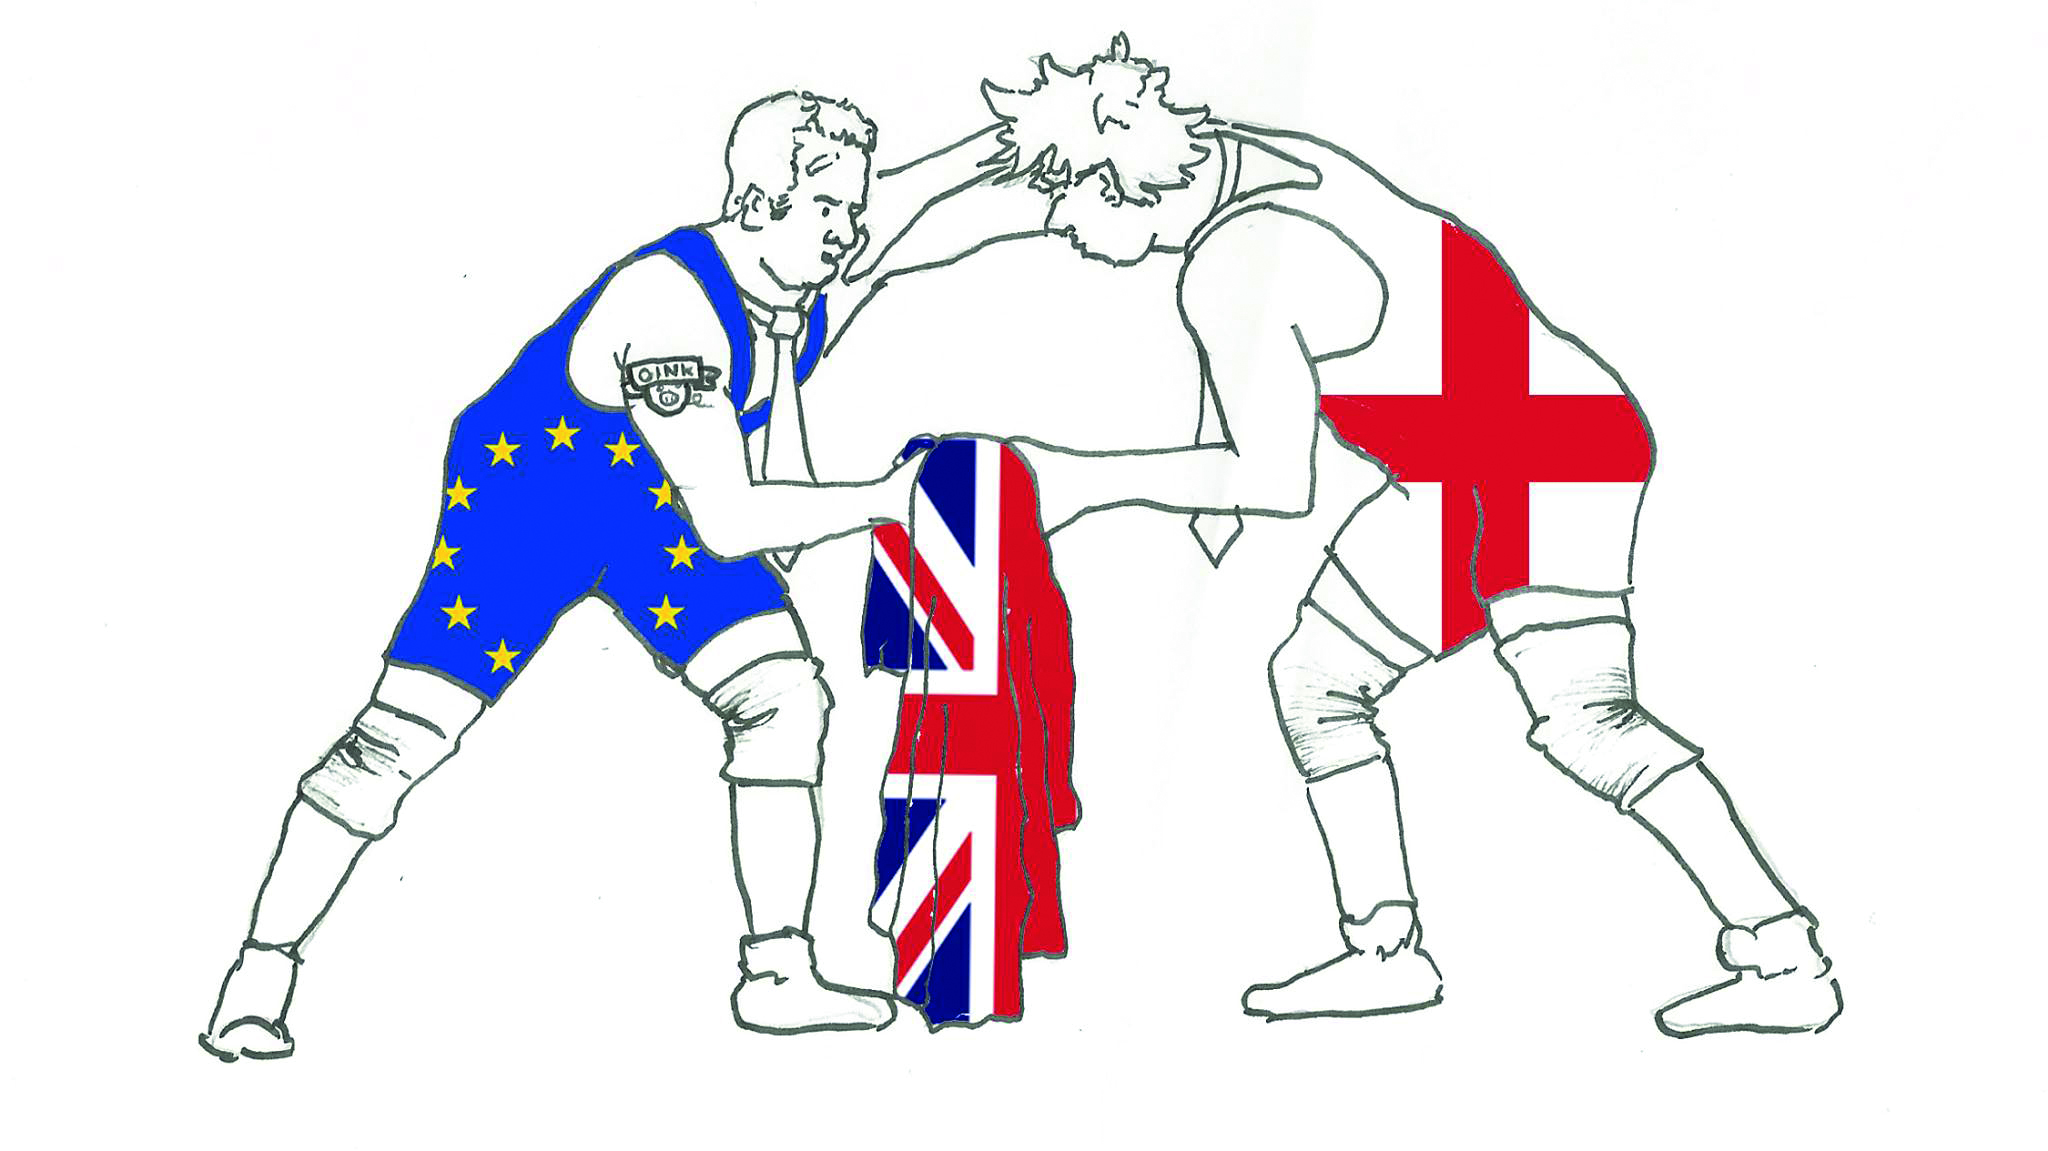 EU Referendum. Illustration: Dougie Dodds for Concrete